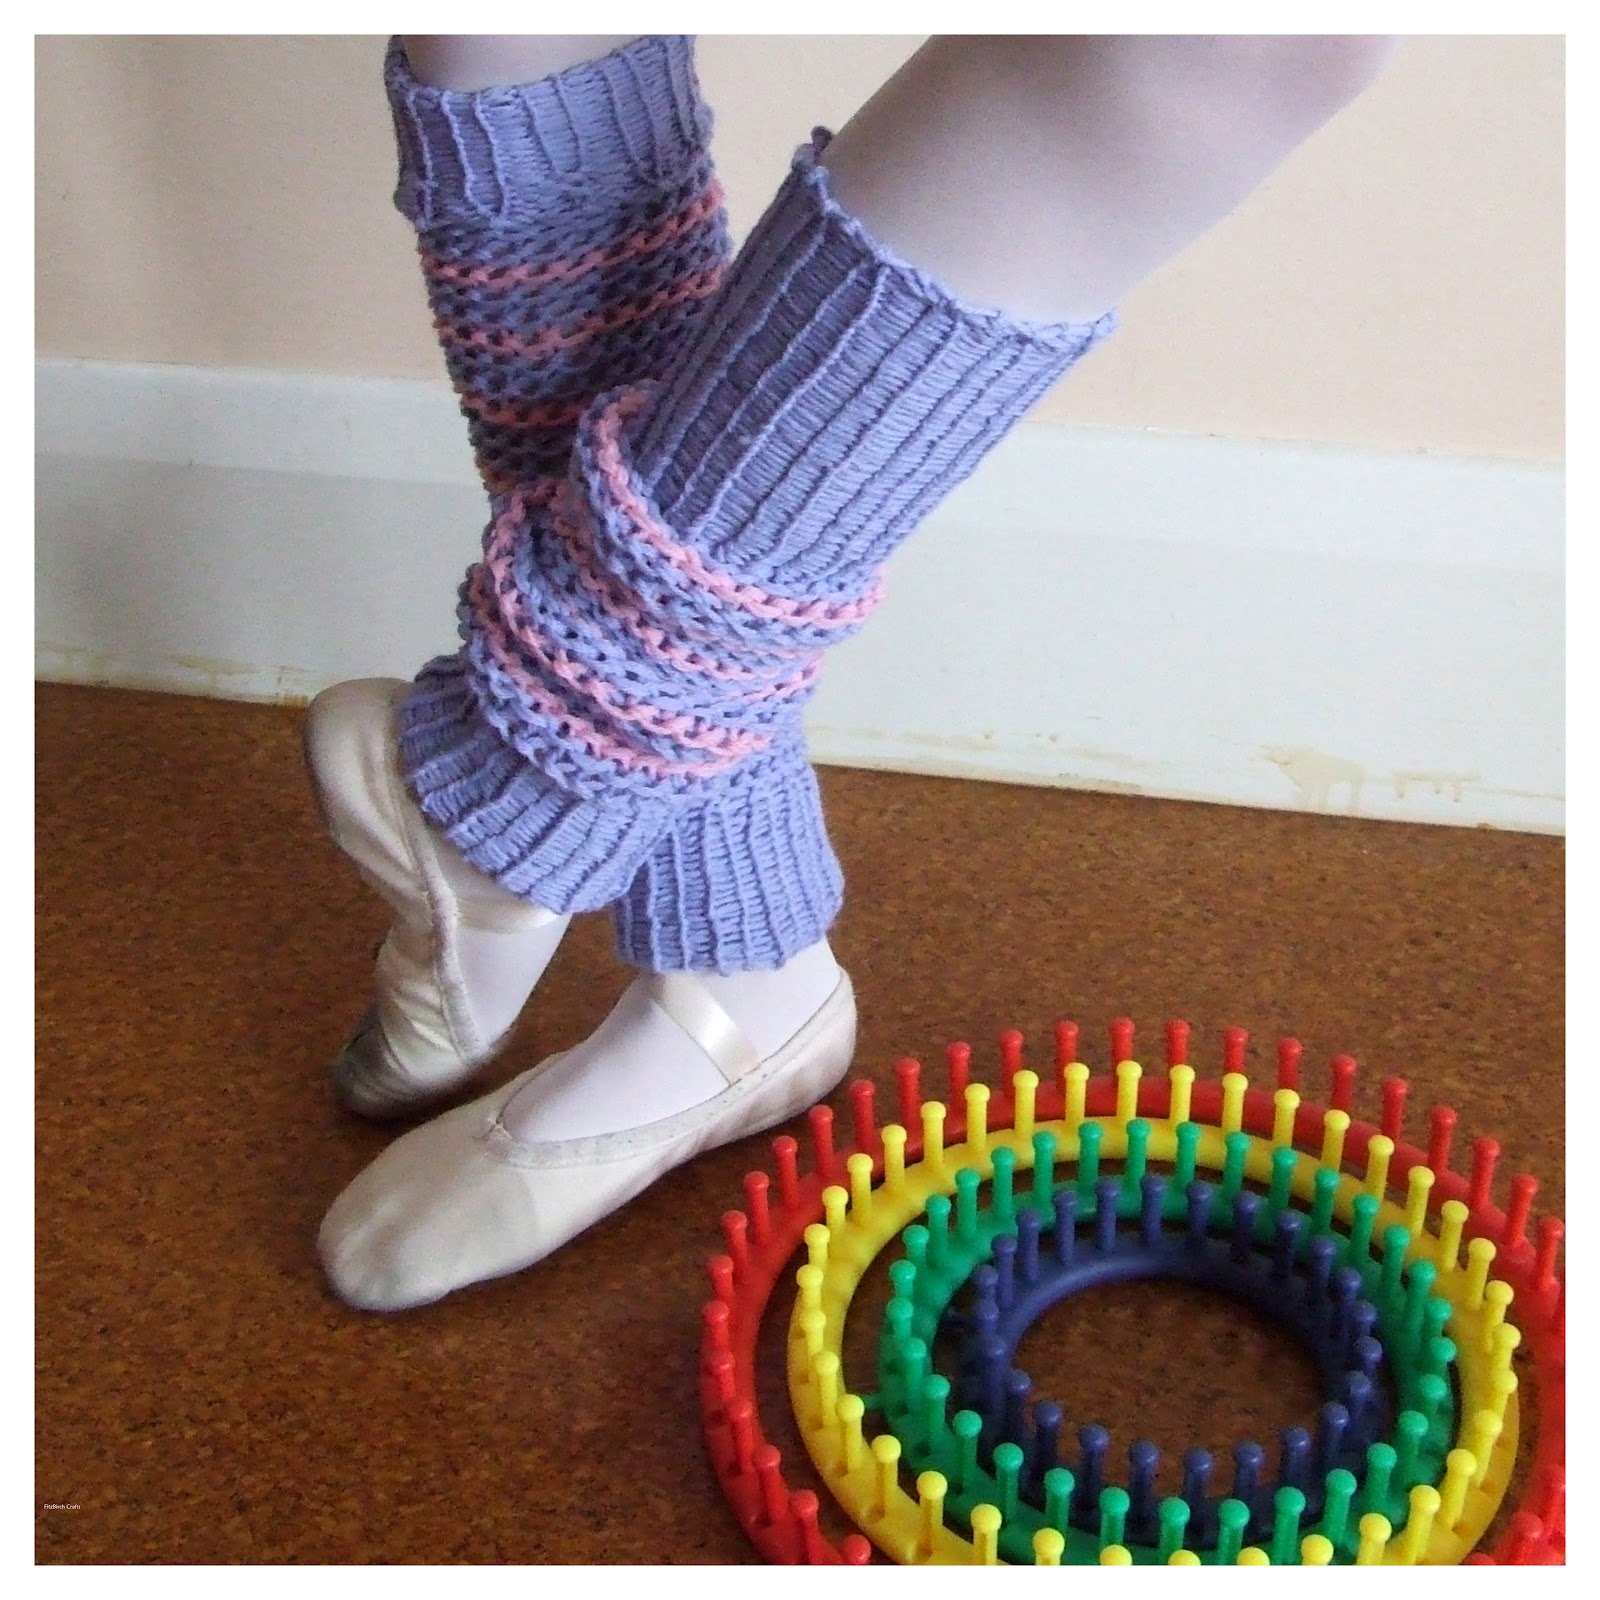 Fitzbirch crafts free loom knit patterns loom knit leg warmers bankloansurffo Image collections